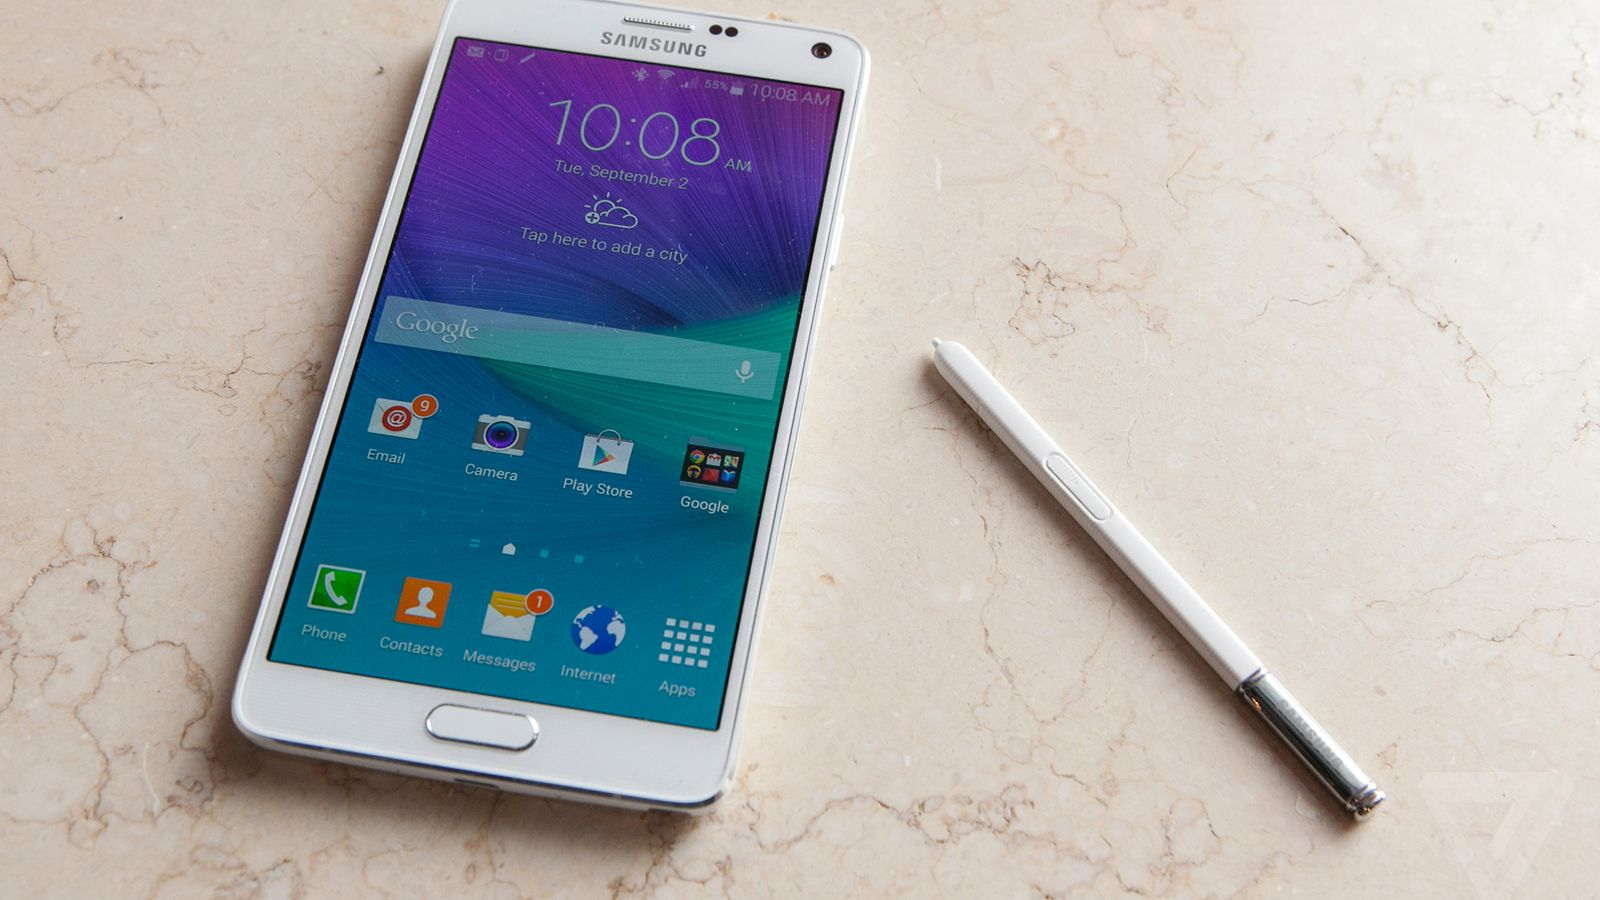 Galaxy Note 4 Batteries Are Being Recalled For Overheating Risk Att Phone Jack Wiring Diagram The Verge